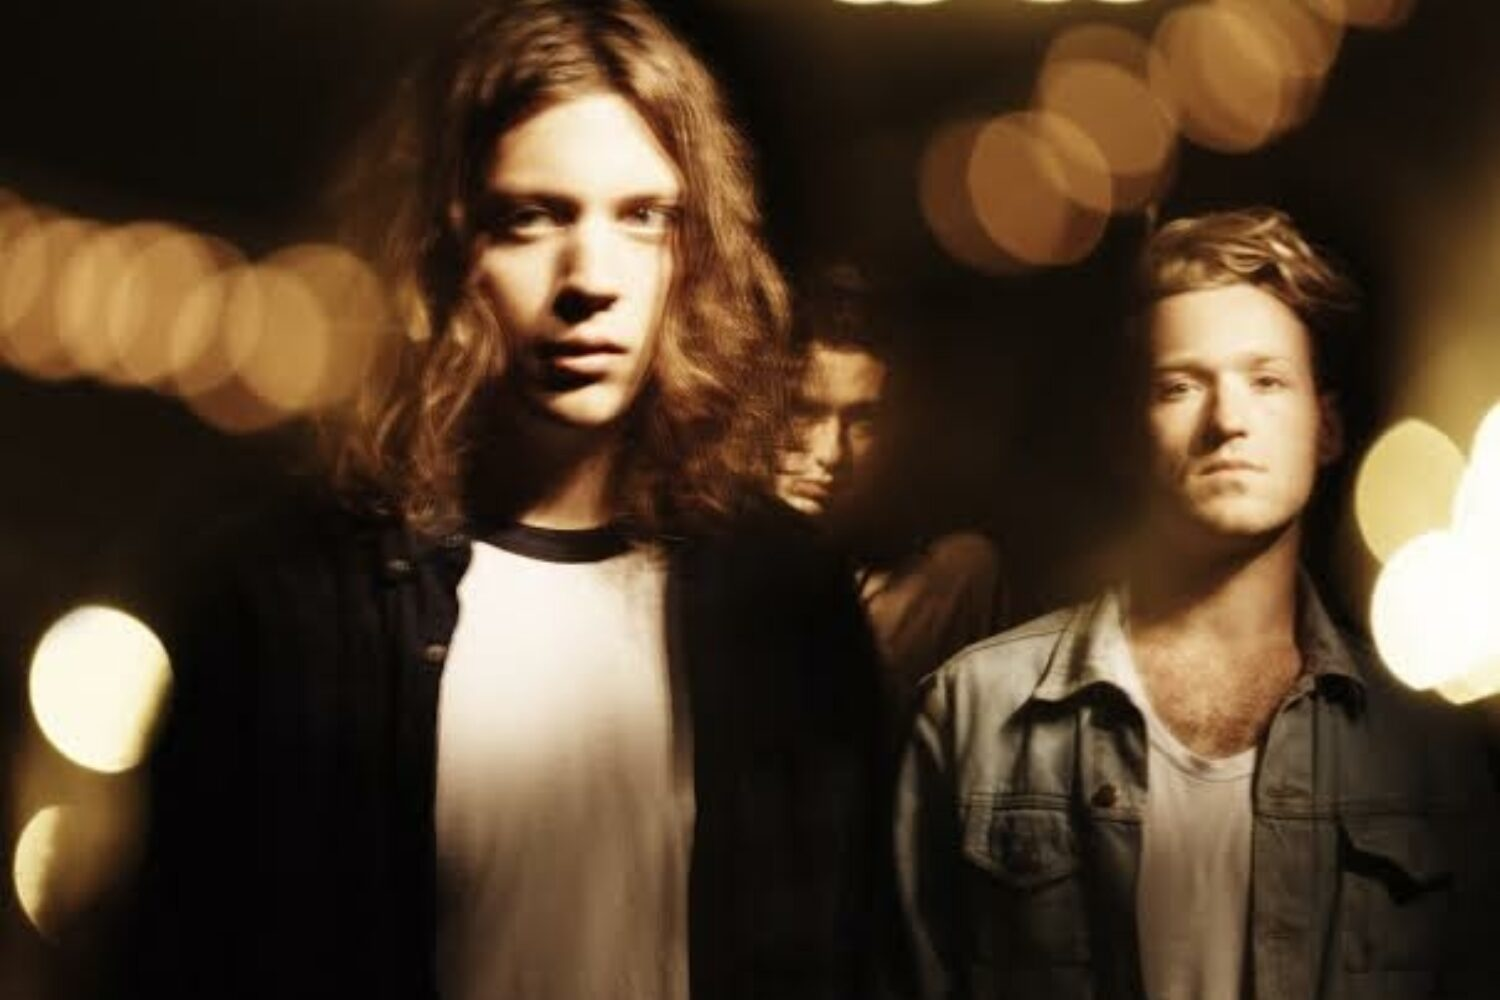 ​Turn it up: The no-nonsense bolshiness of VANT